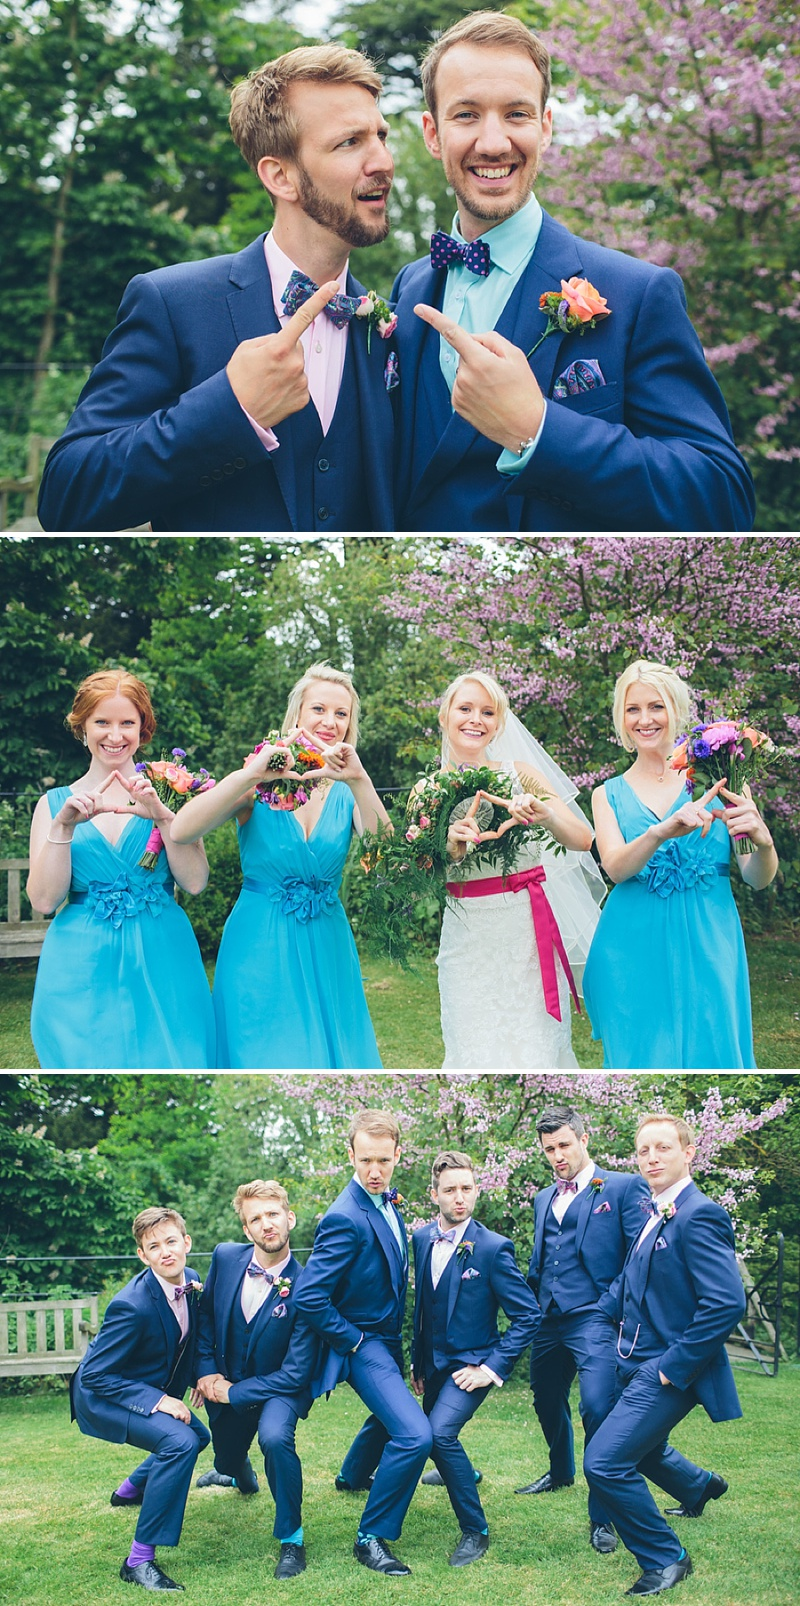 Colourful Rustic Wedding At The Rickety Barn Cambridgeshire Bride In Benjamin Roberts Gown Groom In Navy Cad And The Dandy Suit Images By Richard Skins027